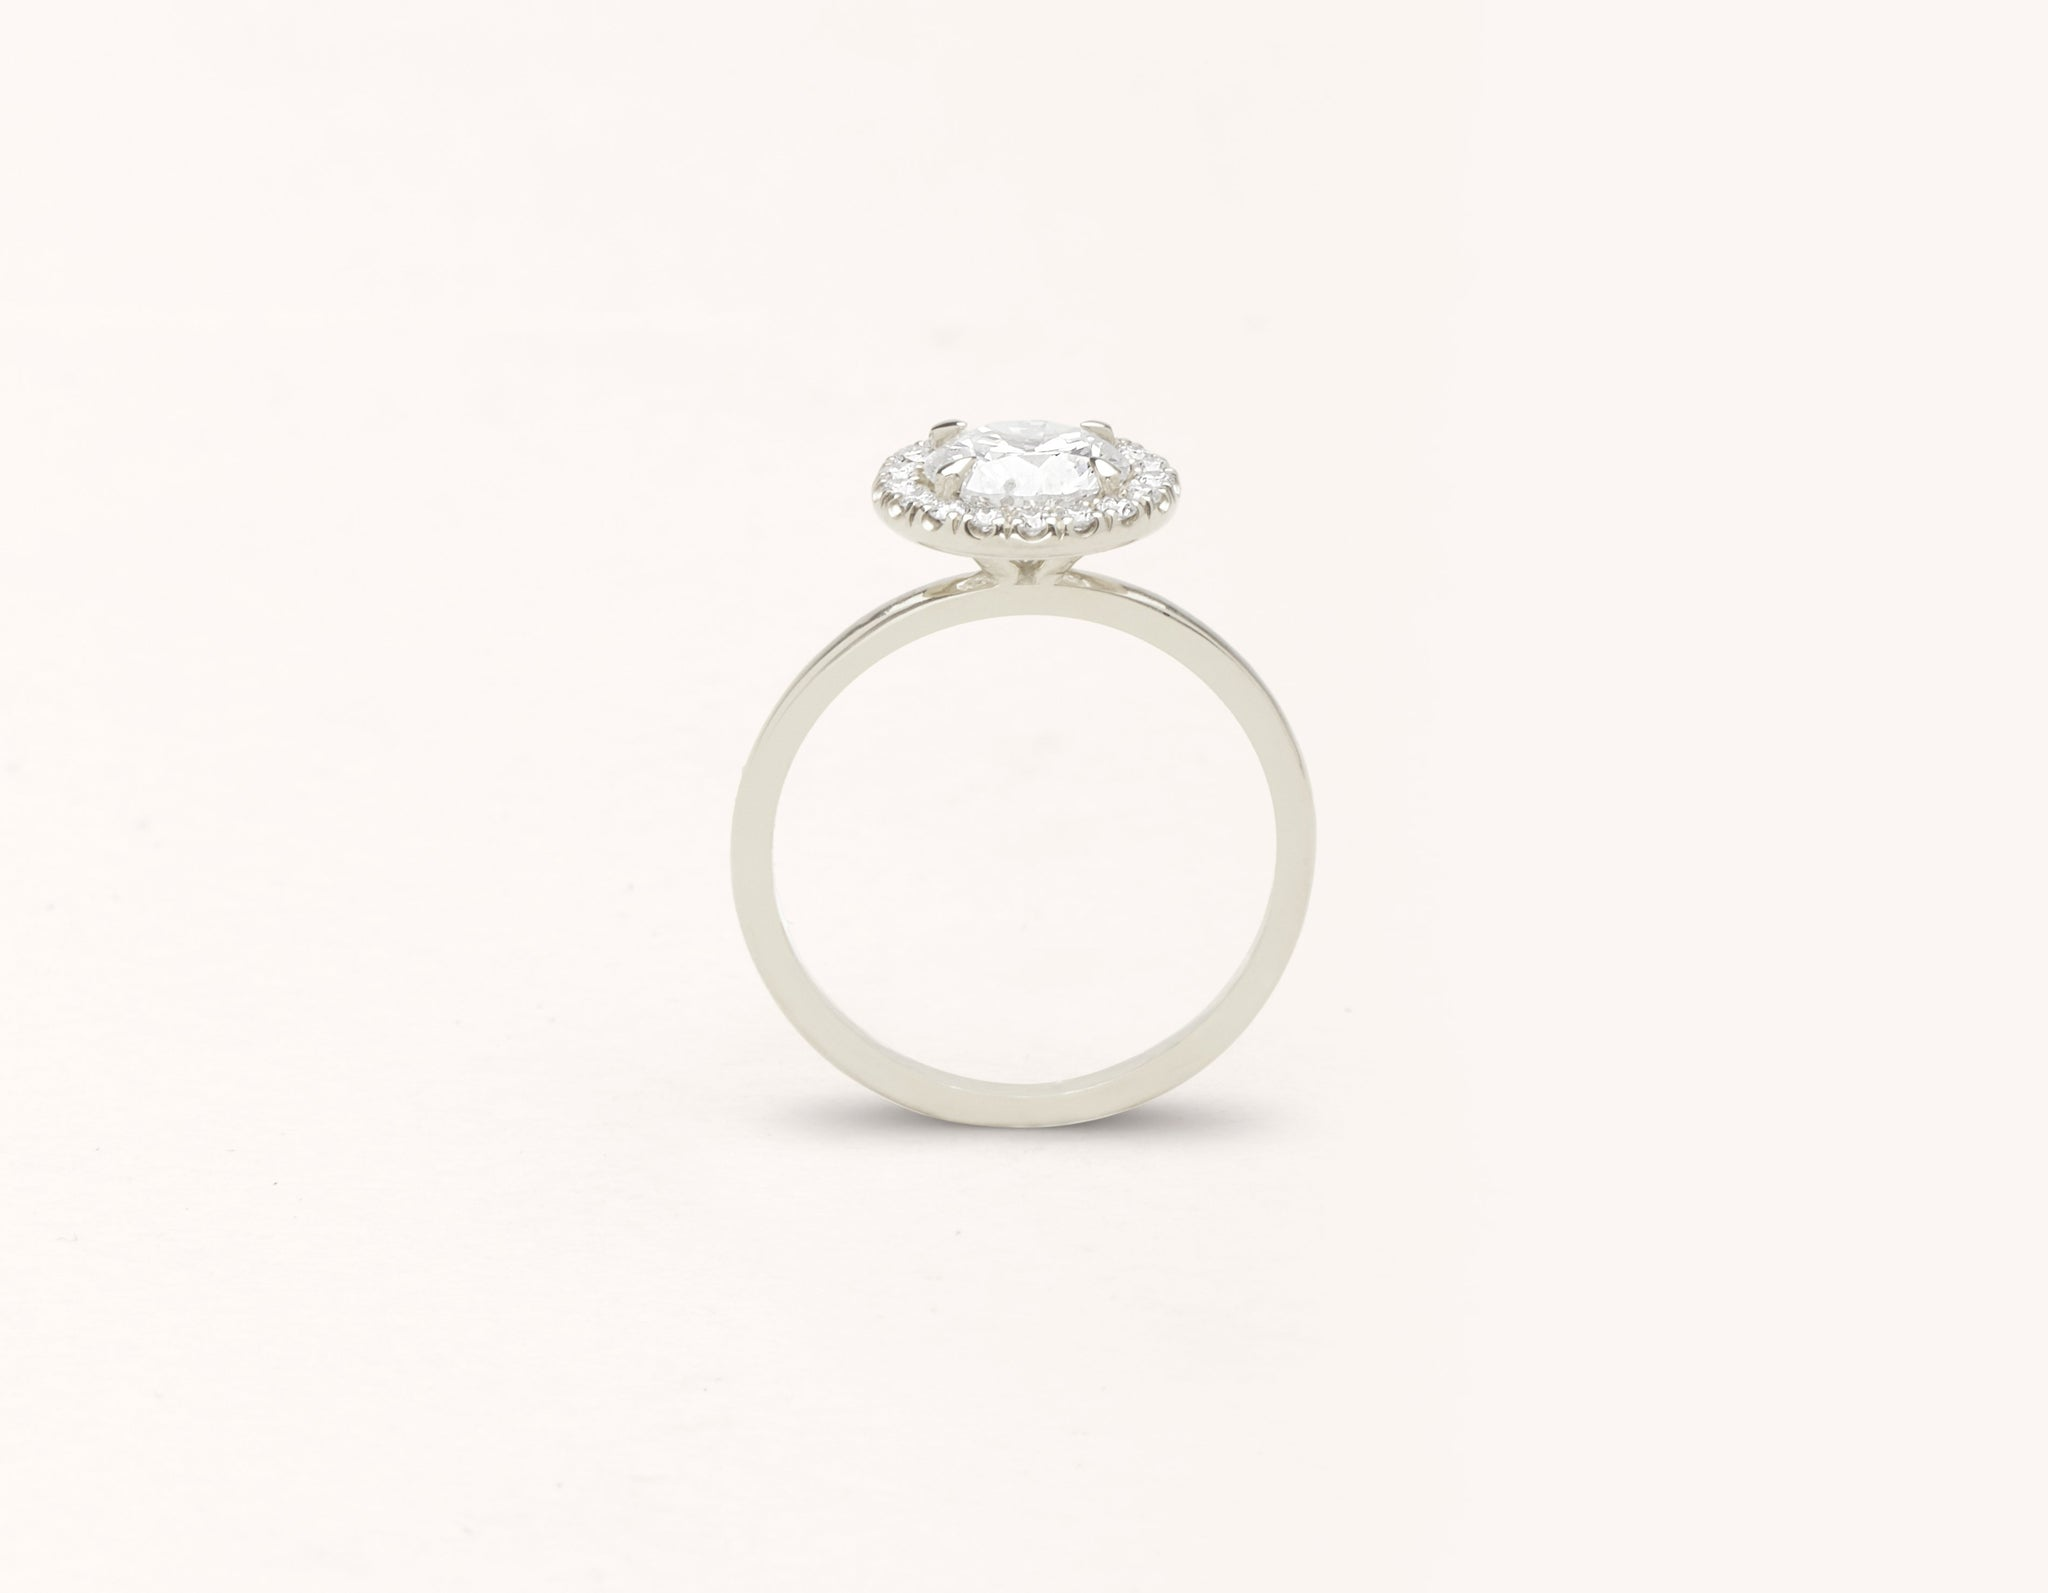 Simple modern 18k solid white gold 1 carat Halo diamond engagement ring Vrai & Oro